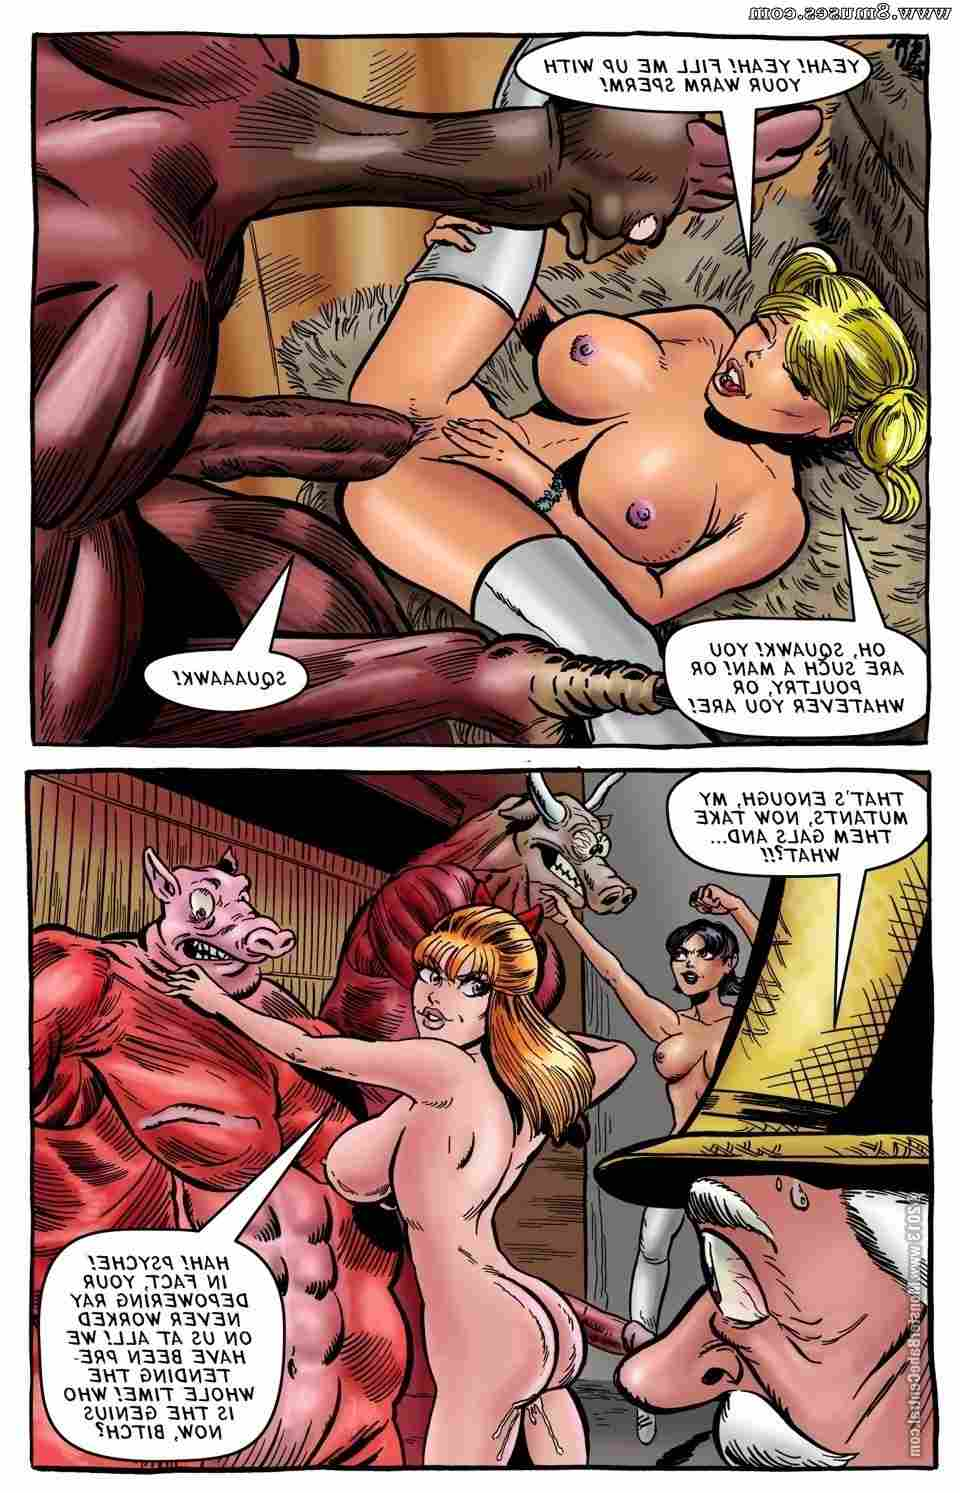 Central-Comics/Monster-Babe-Central/Monster-Channel Monster_Channel__8muses_-_Sex_and_Porn_Comics_48.jpg